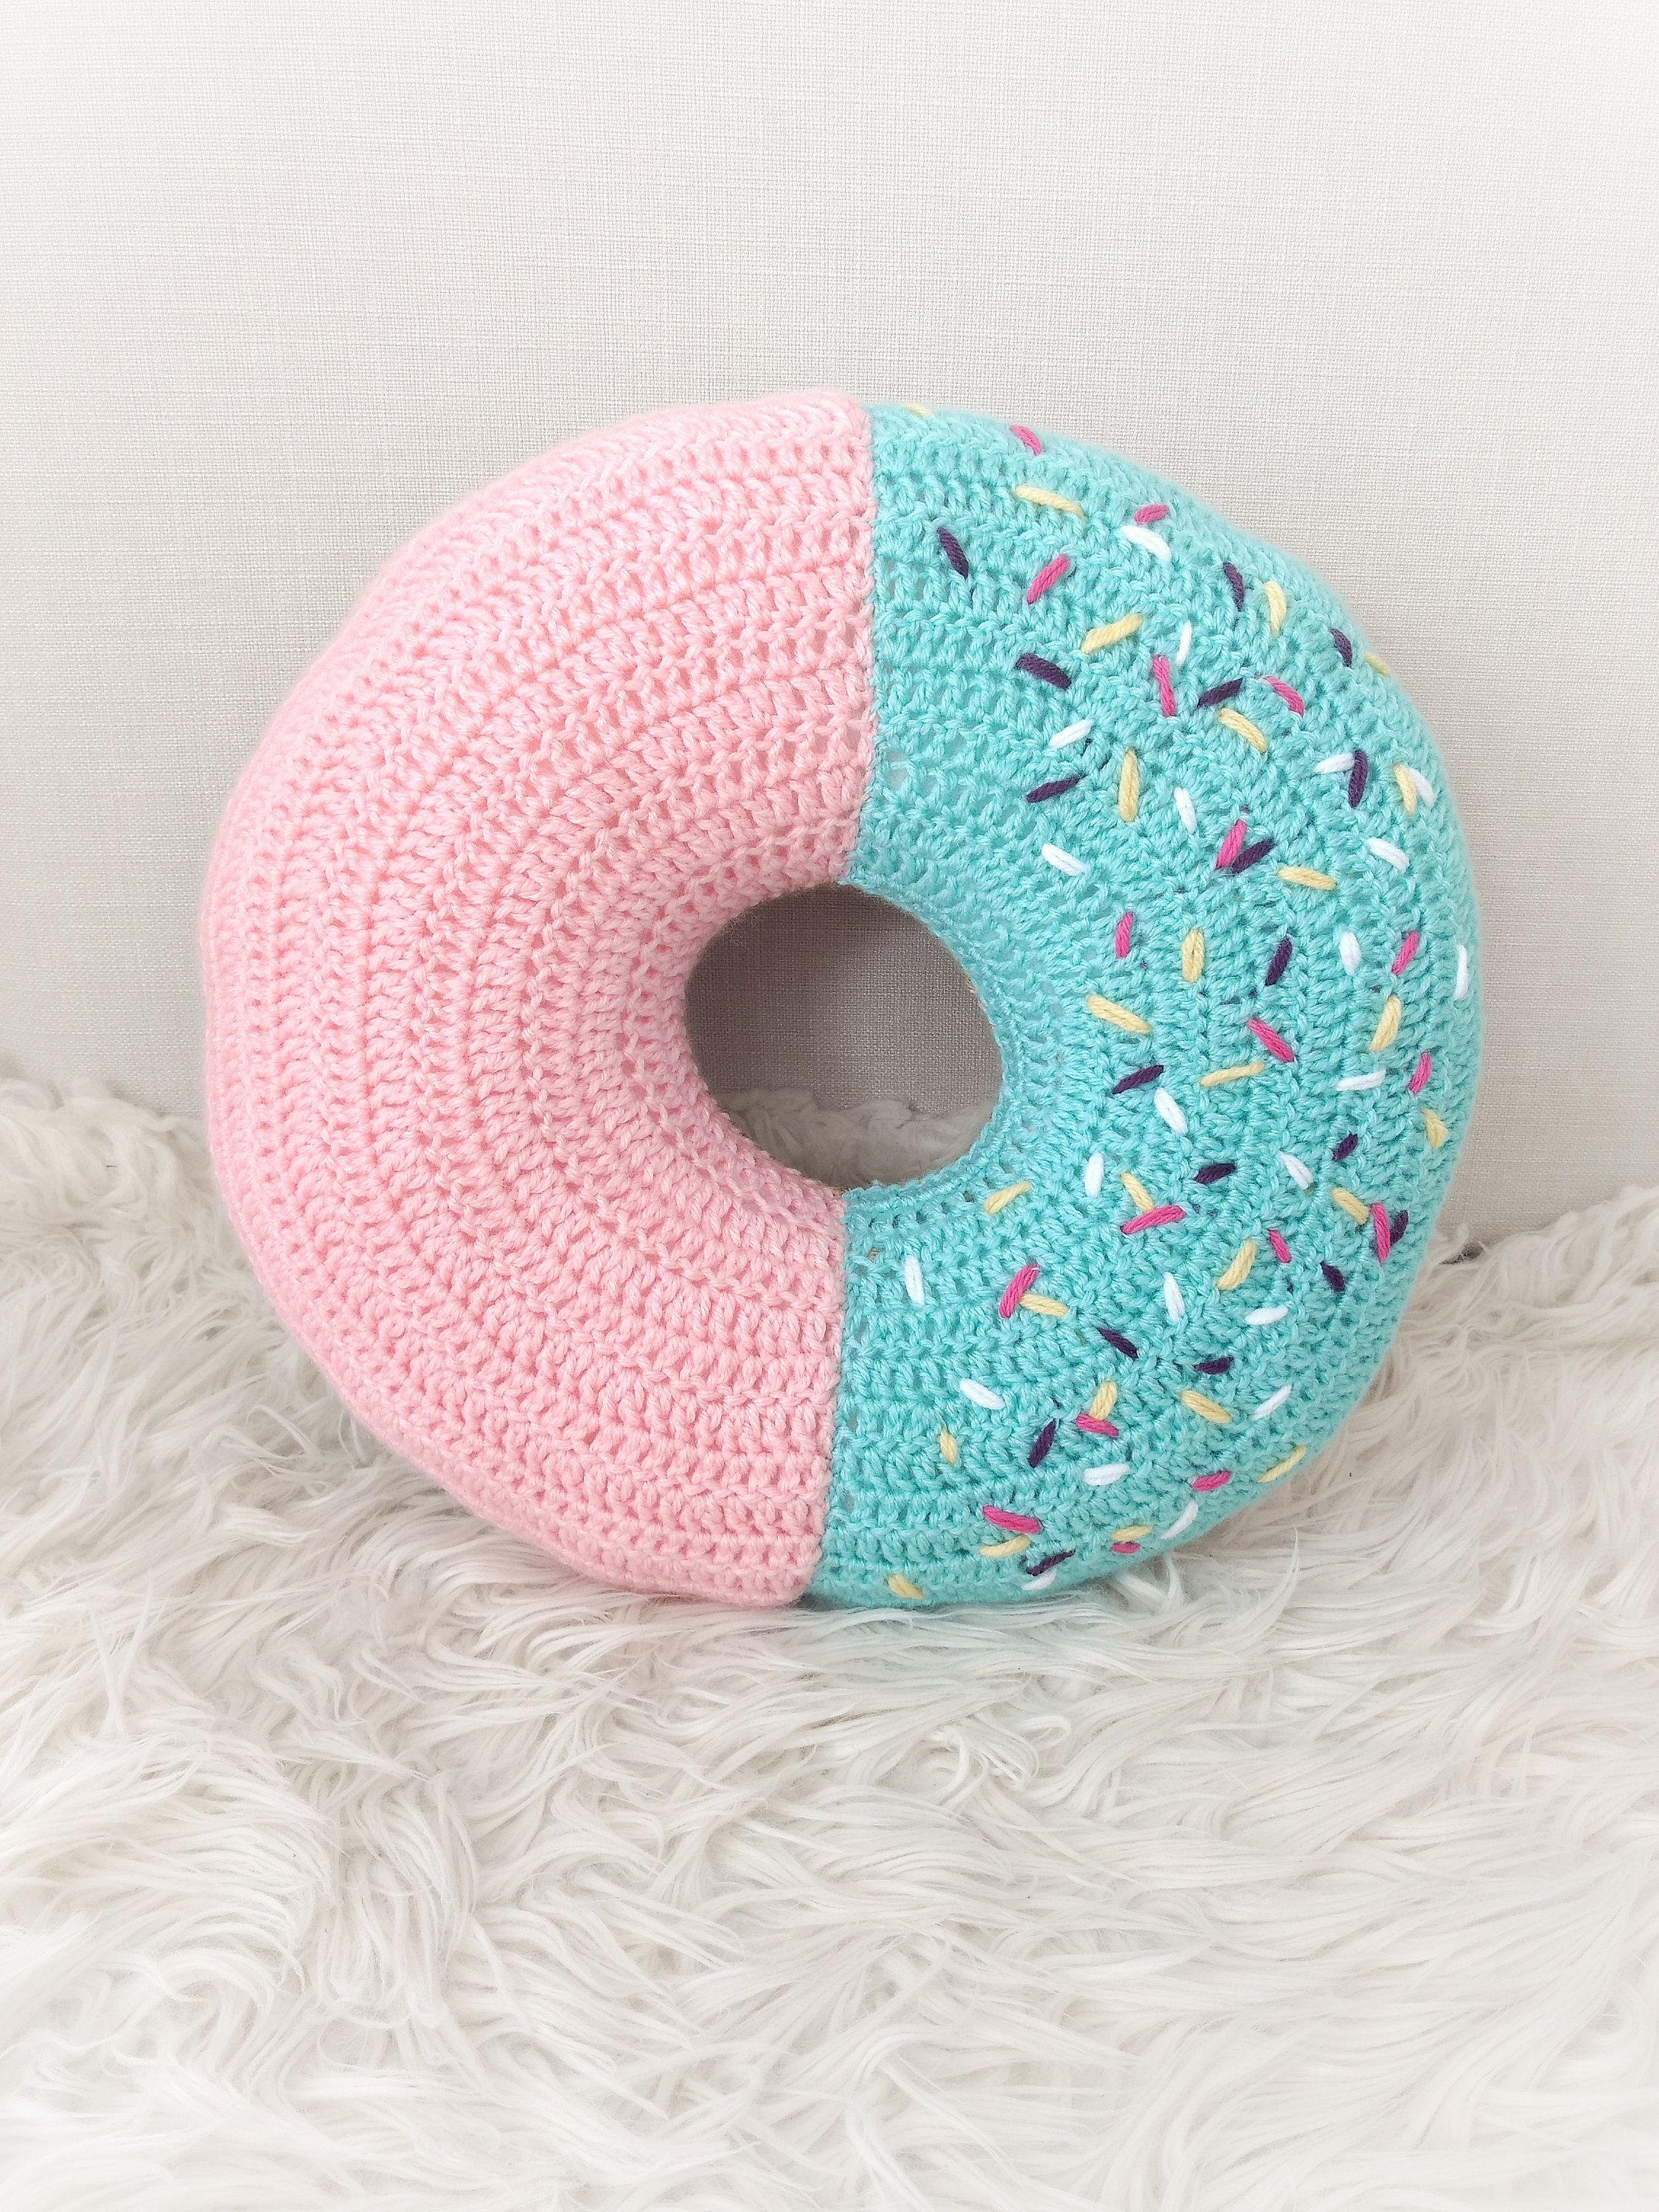 How to Crochet Amigurumi Donut - Free Pattern | Croby Patterns | 3000x2250